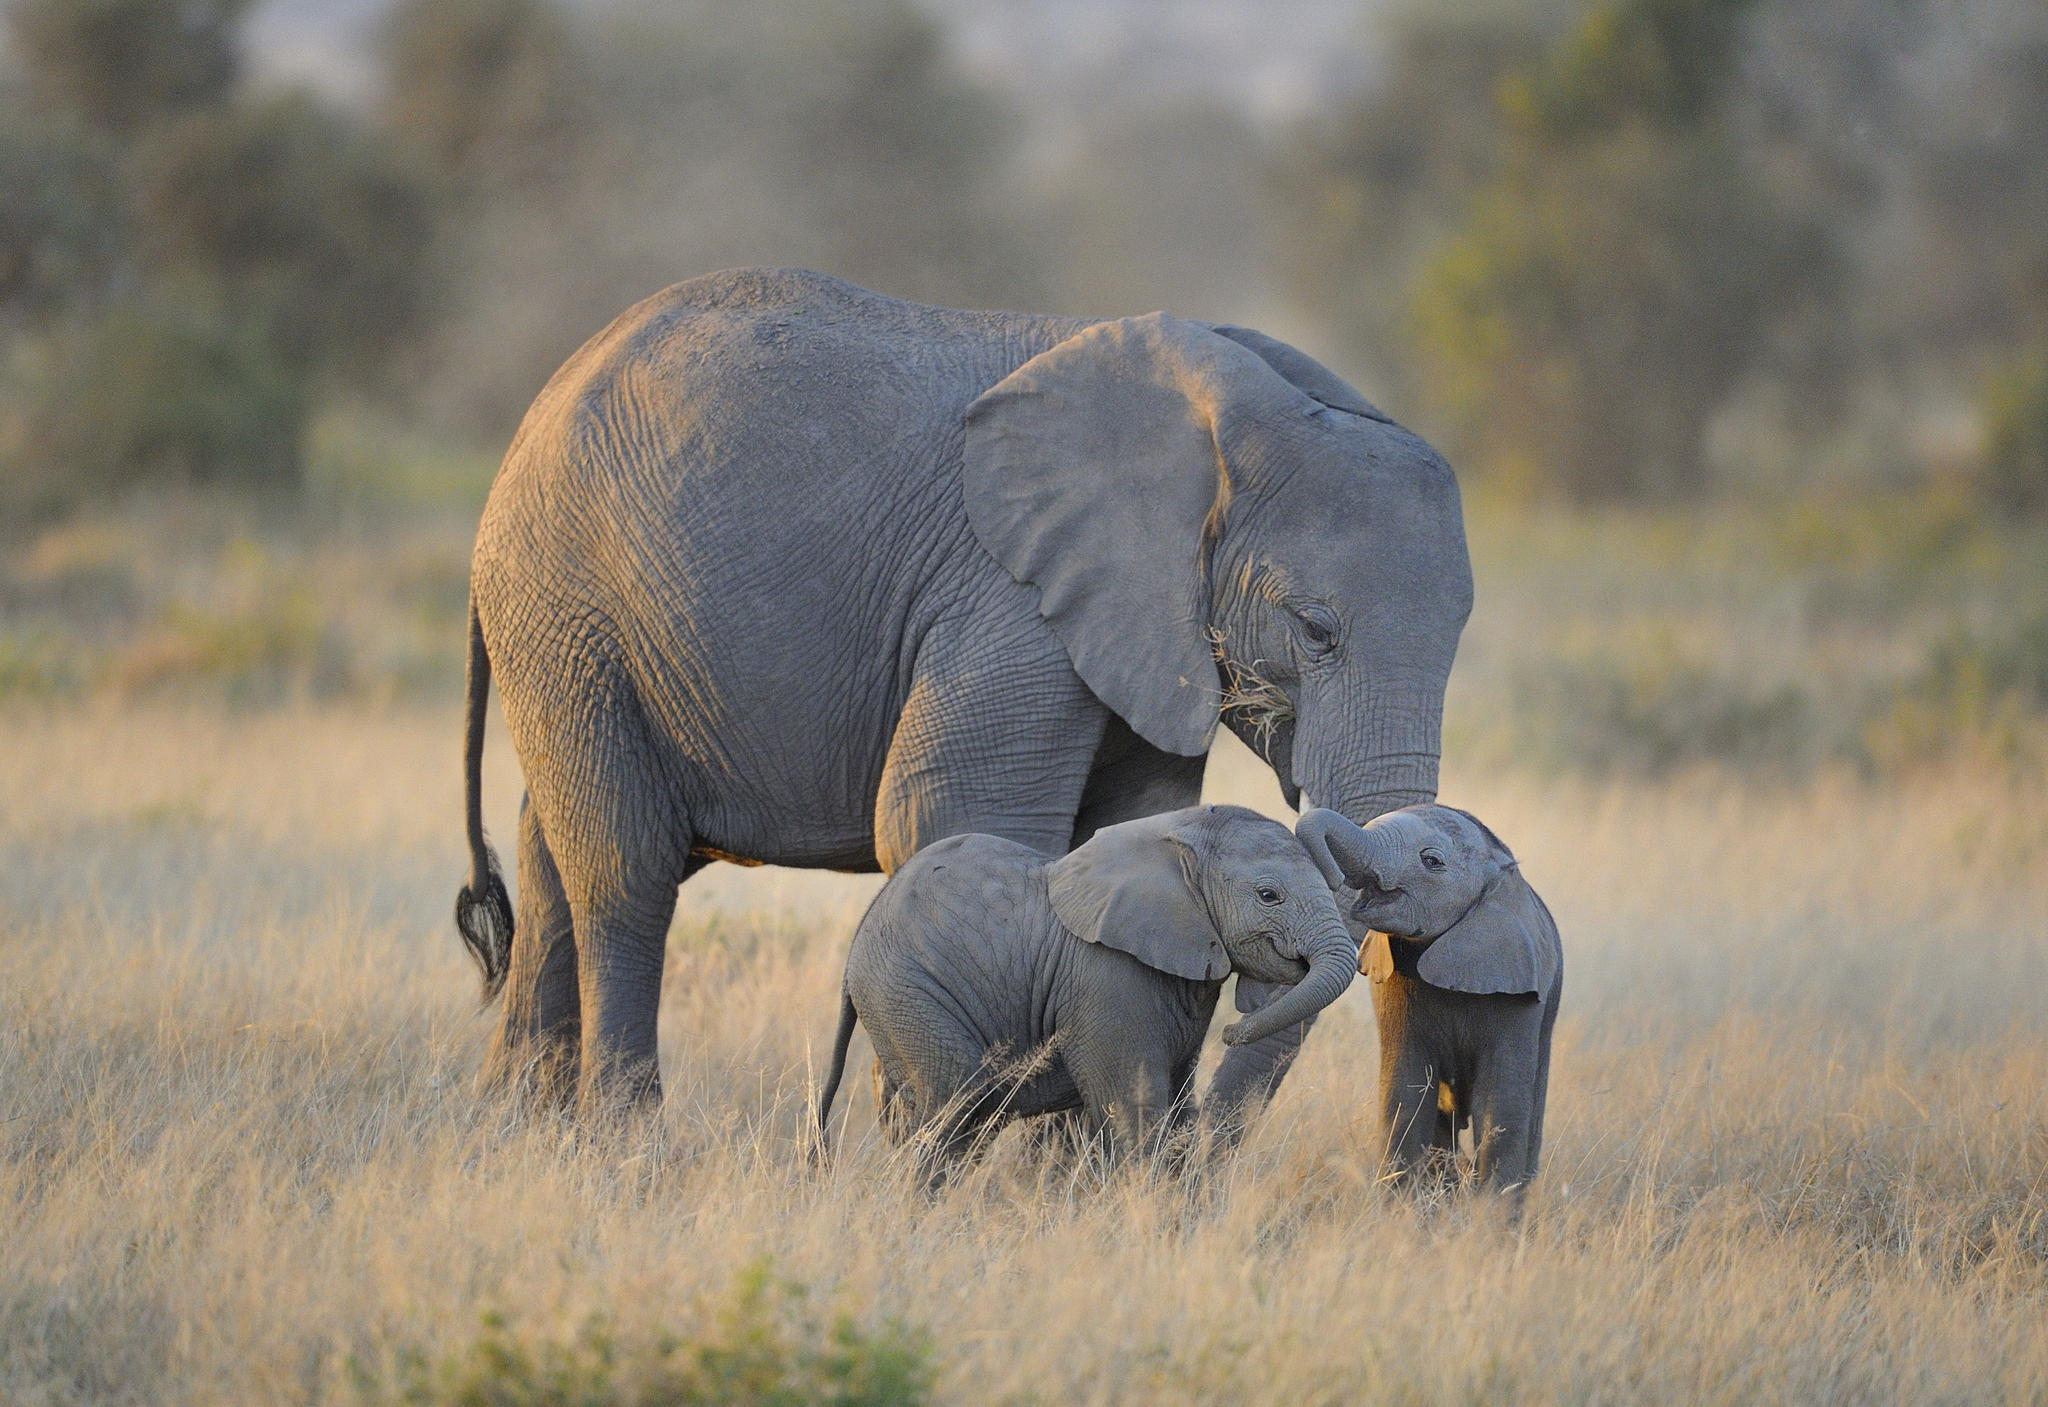 30+ Cute & Funny Baby Elephant Images That Will Brighten Up Your Day